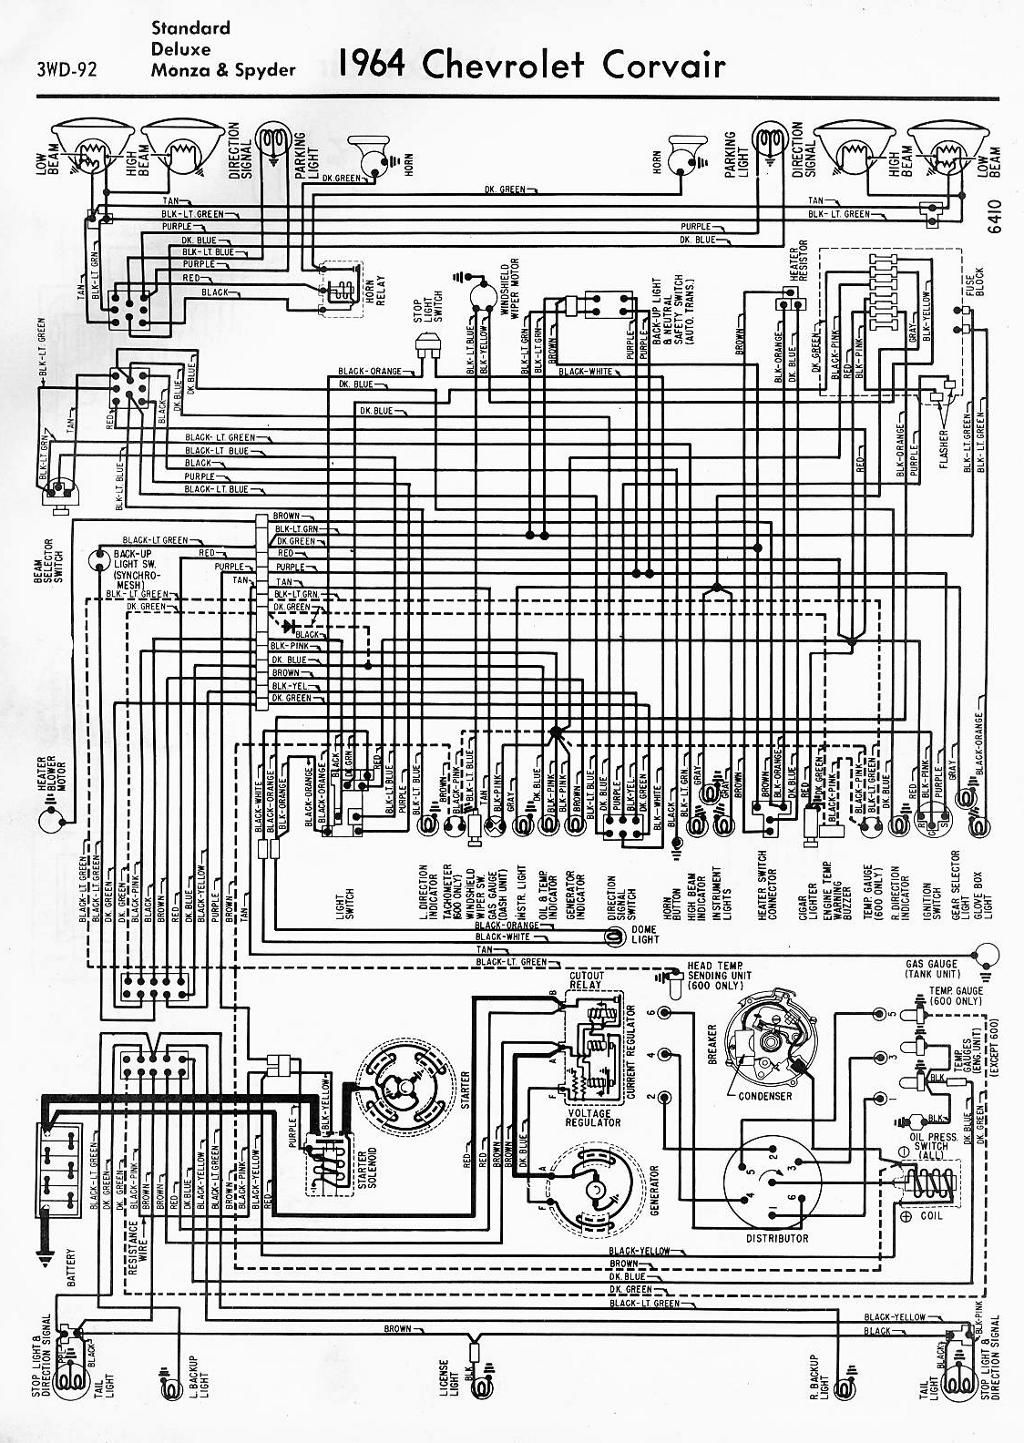 Wiring Diagram For 1964 Chevrolet Corvair Standard Deluxe Monza Spyder Diagram Monza Chevrolet Corvair